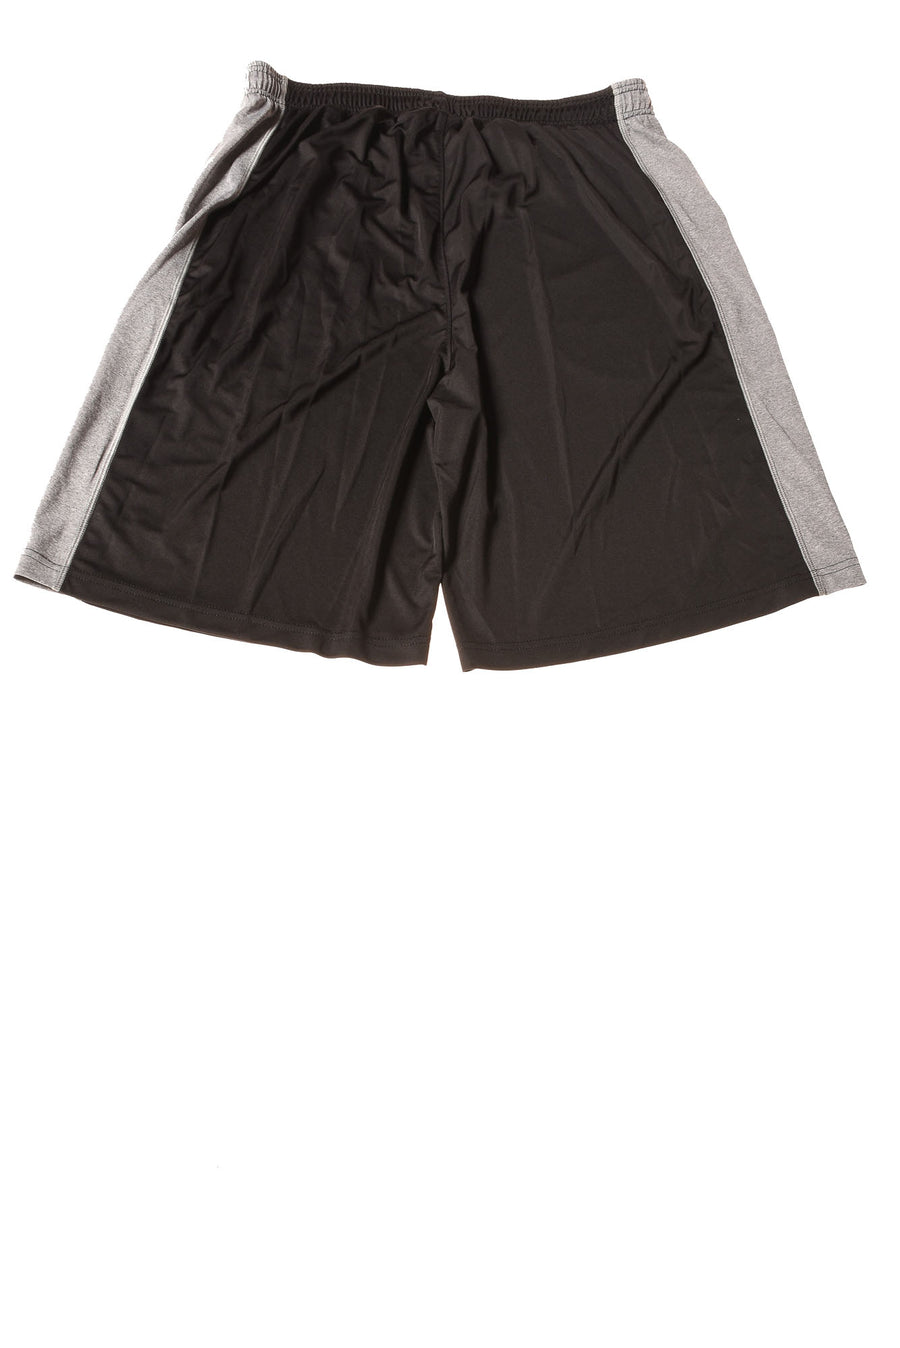 USED Puma Men's Shorts X-Large Black & Gray